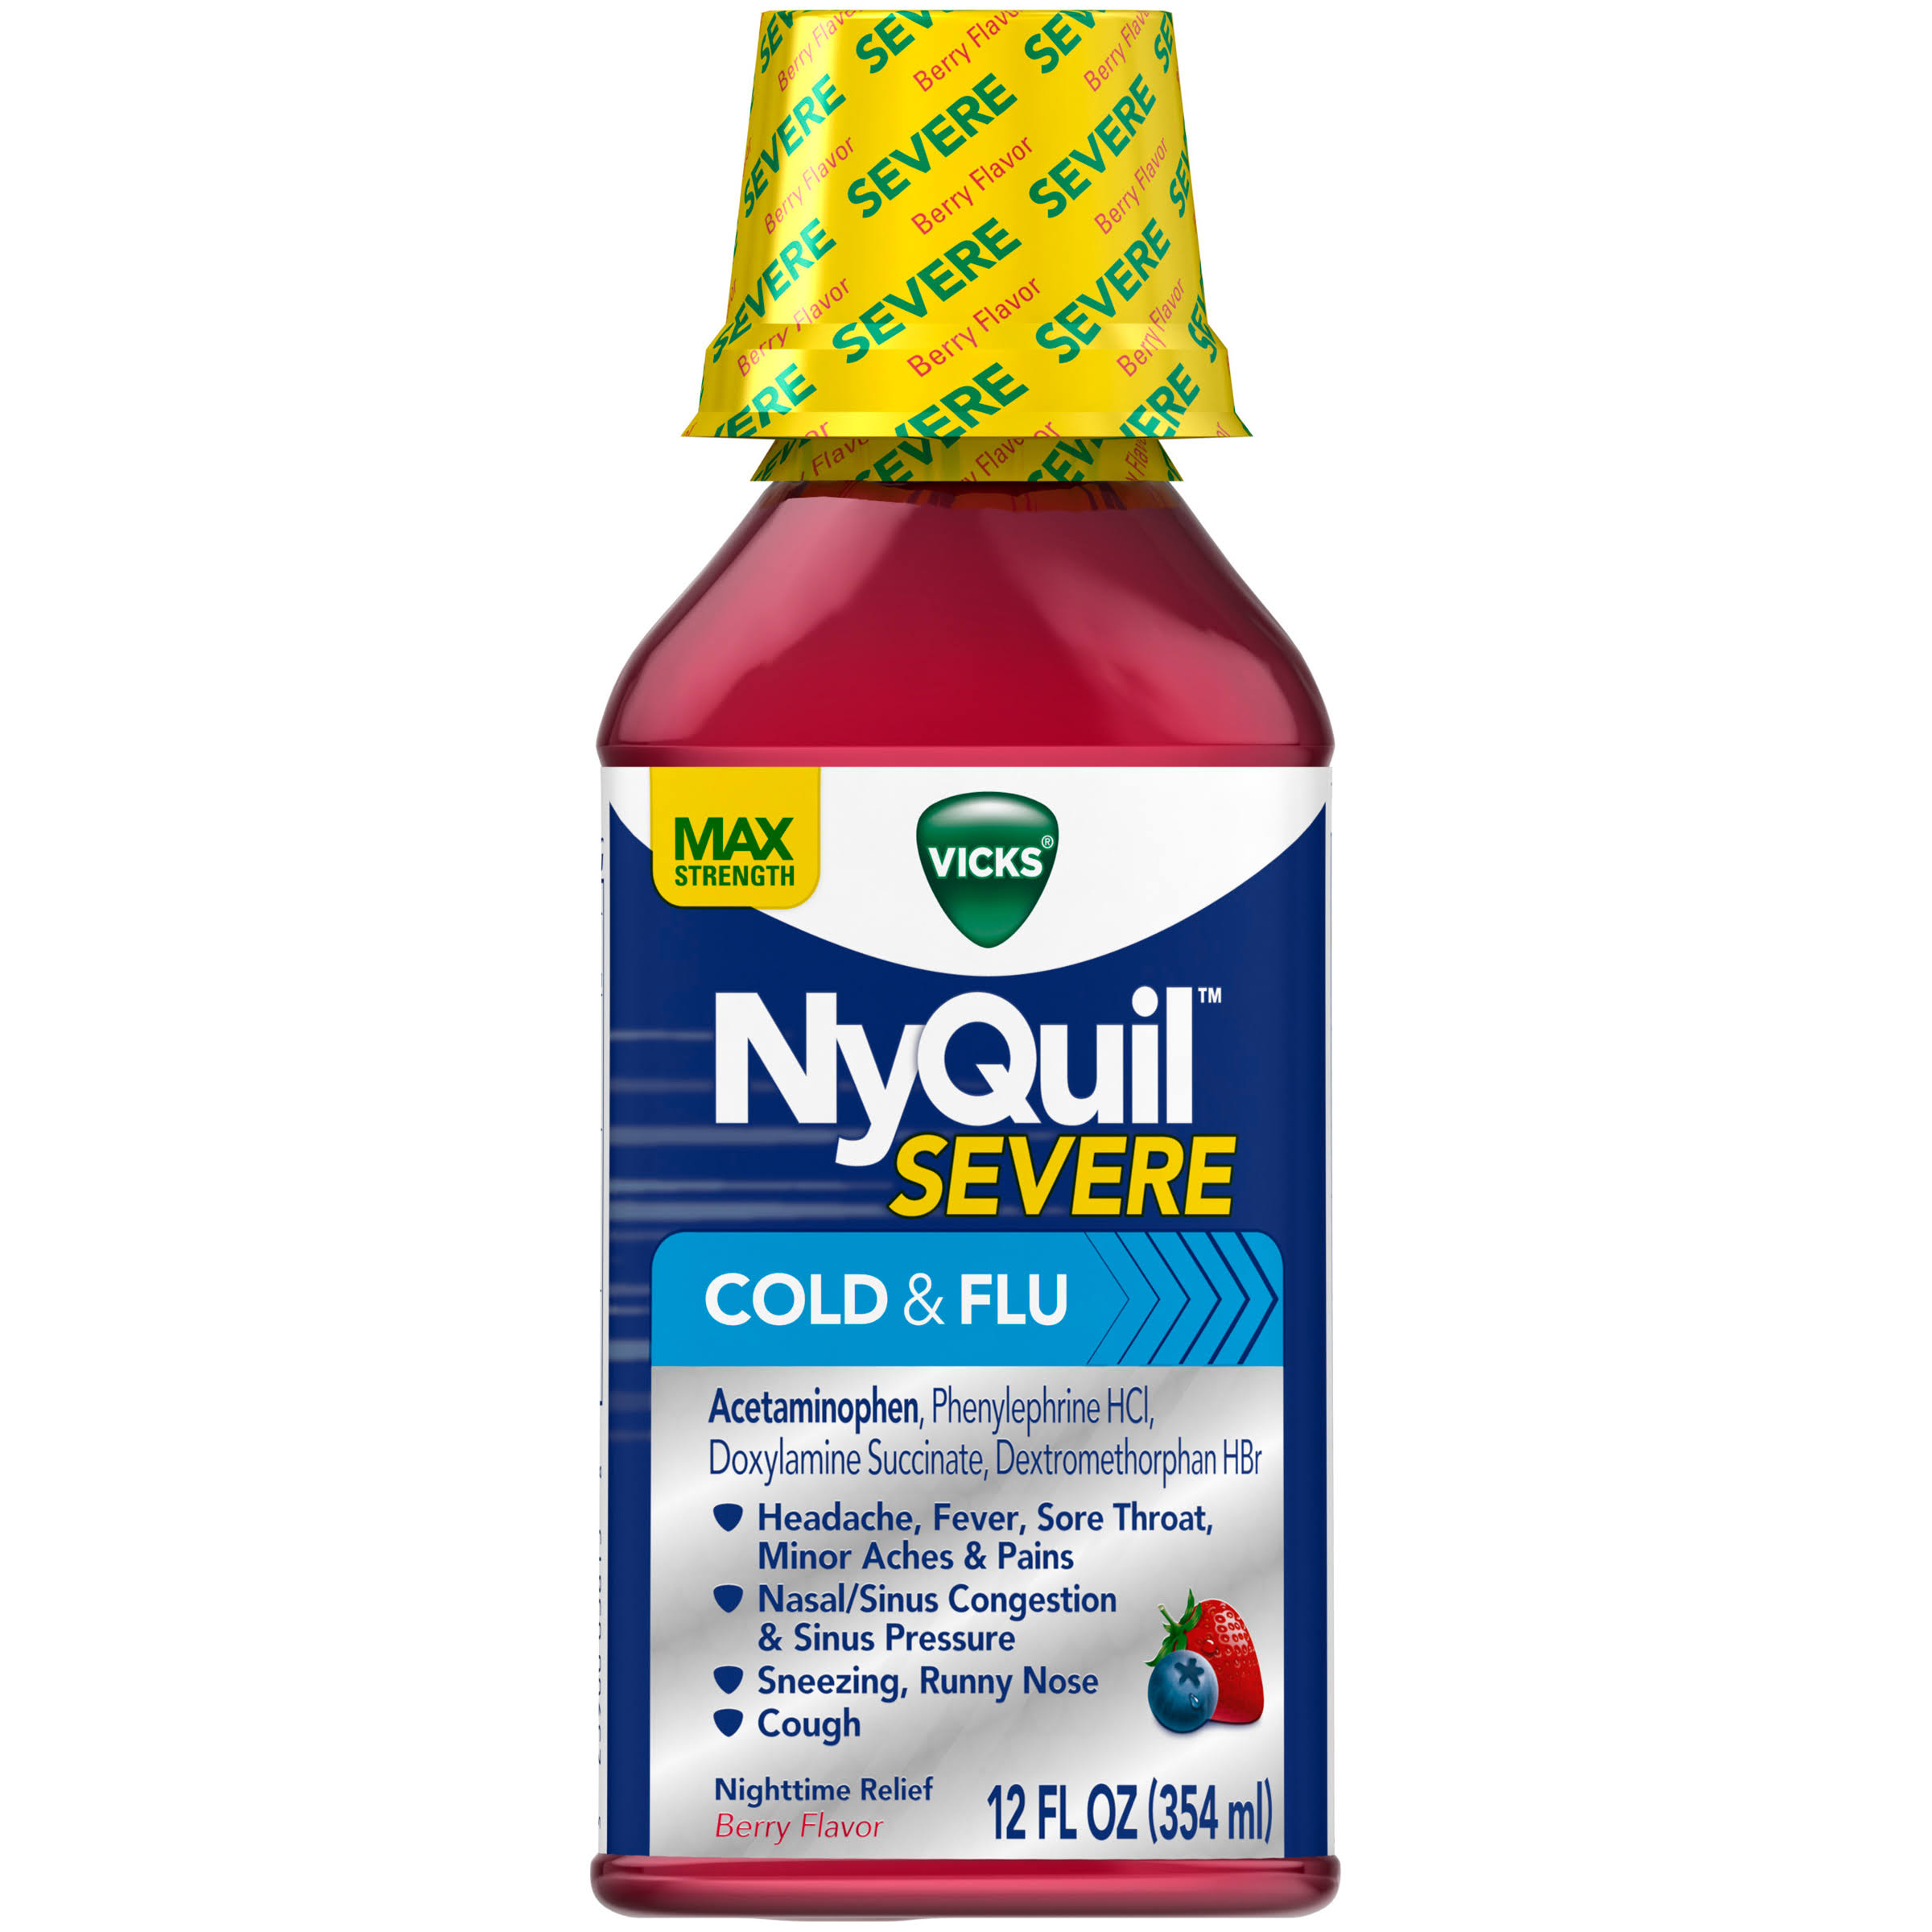 Vicks NyQuil Severe Cold and Flu Nighttime Relief Liquid - 12oz, Berry Flavor